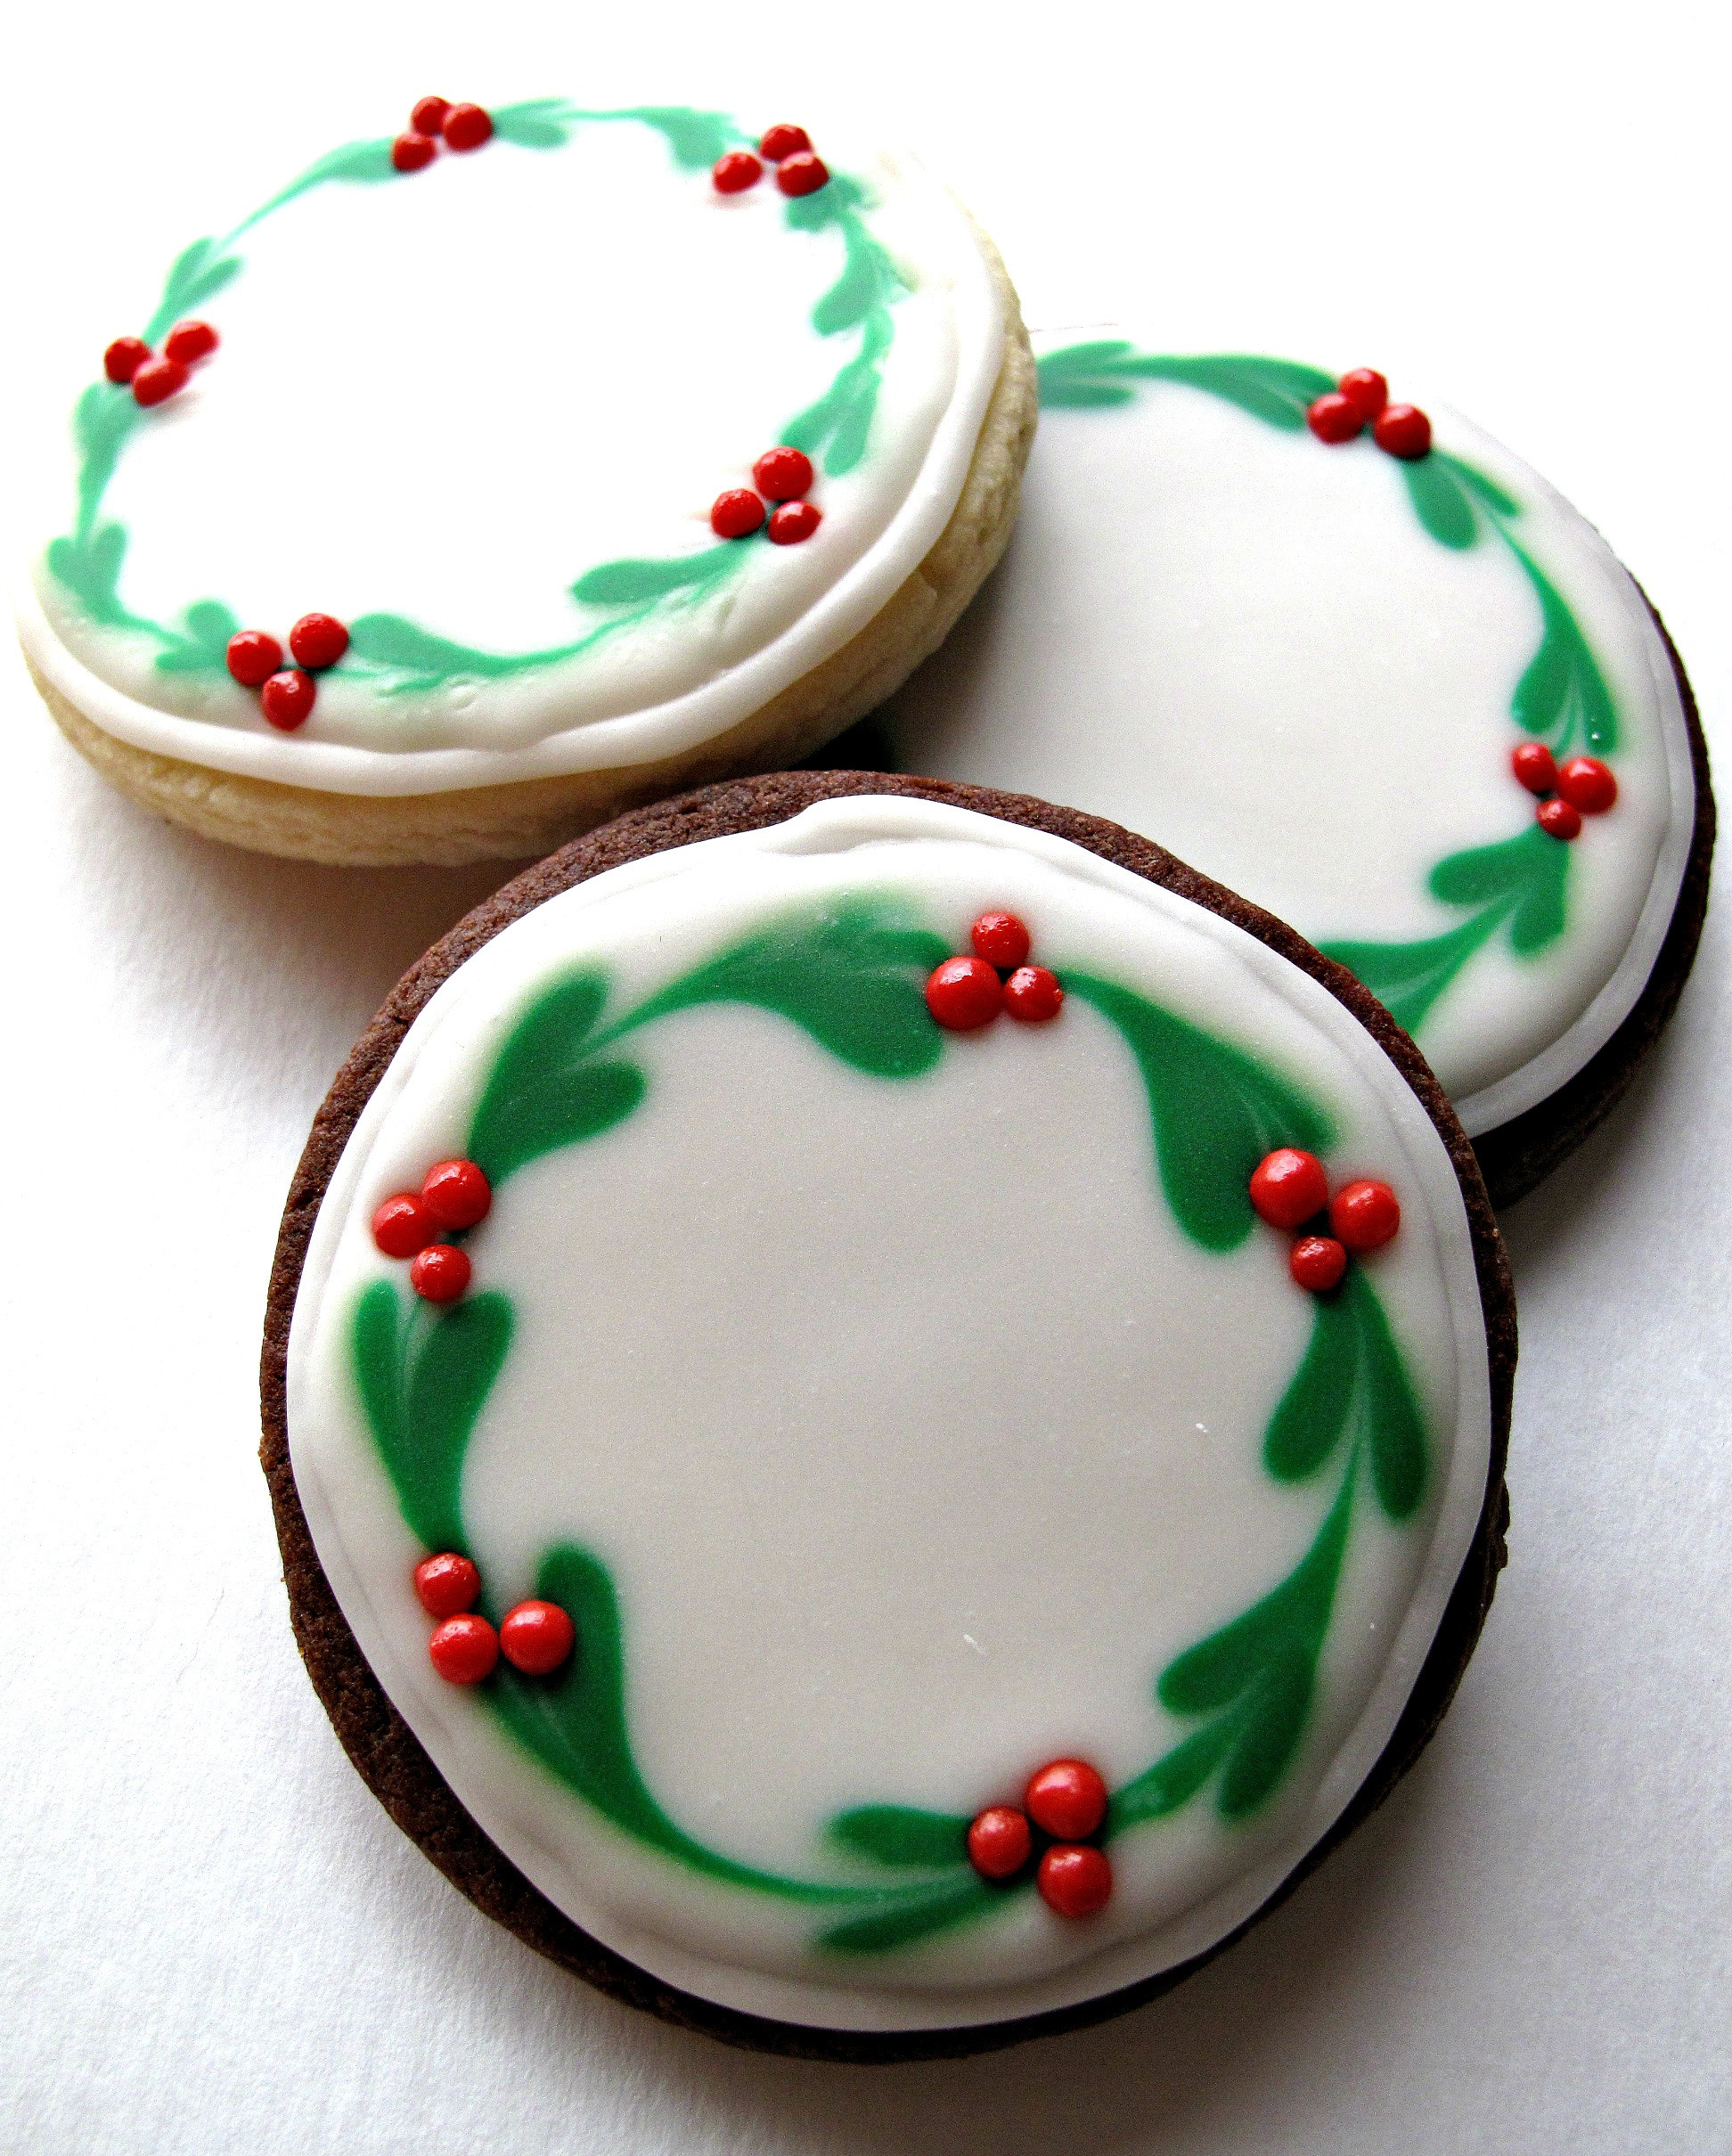 Iced Christmas Cookies  Chocolate Covered Oreos and Iced Christmas Sugar Cookies